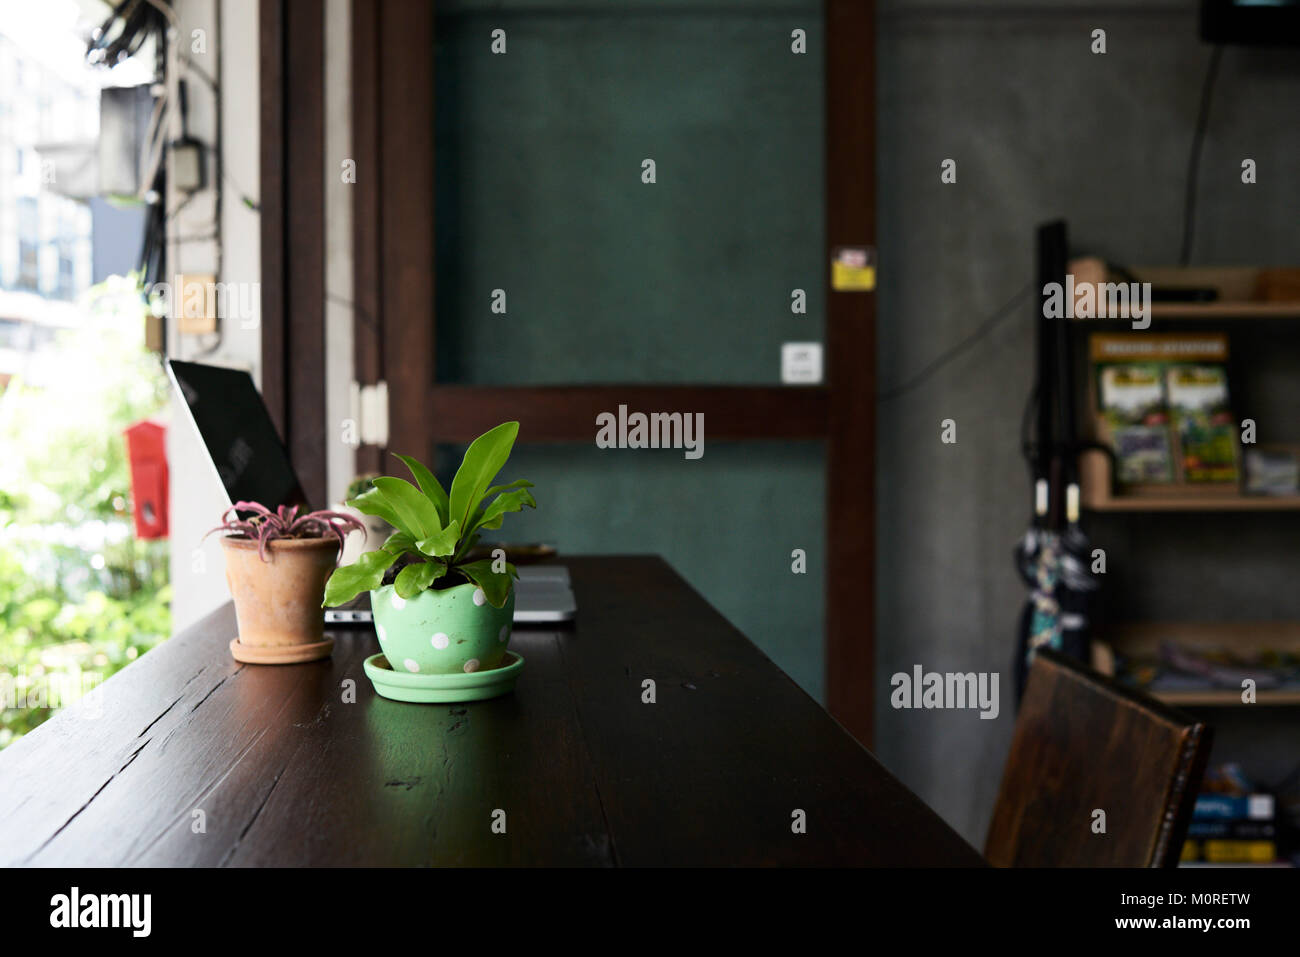 Laptop on wooden table with plants inside of the office. - Stock Image